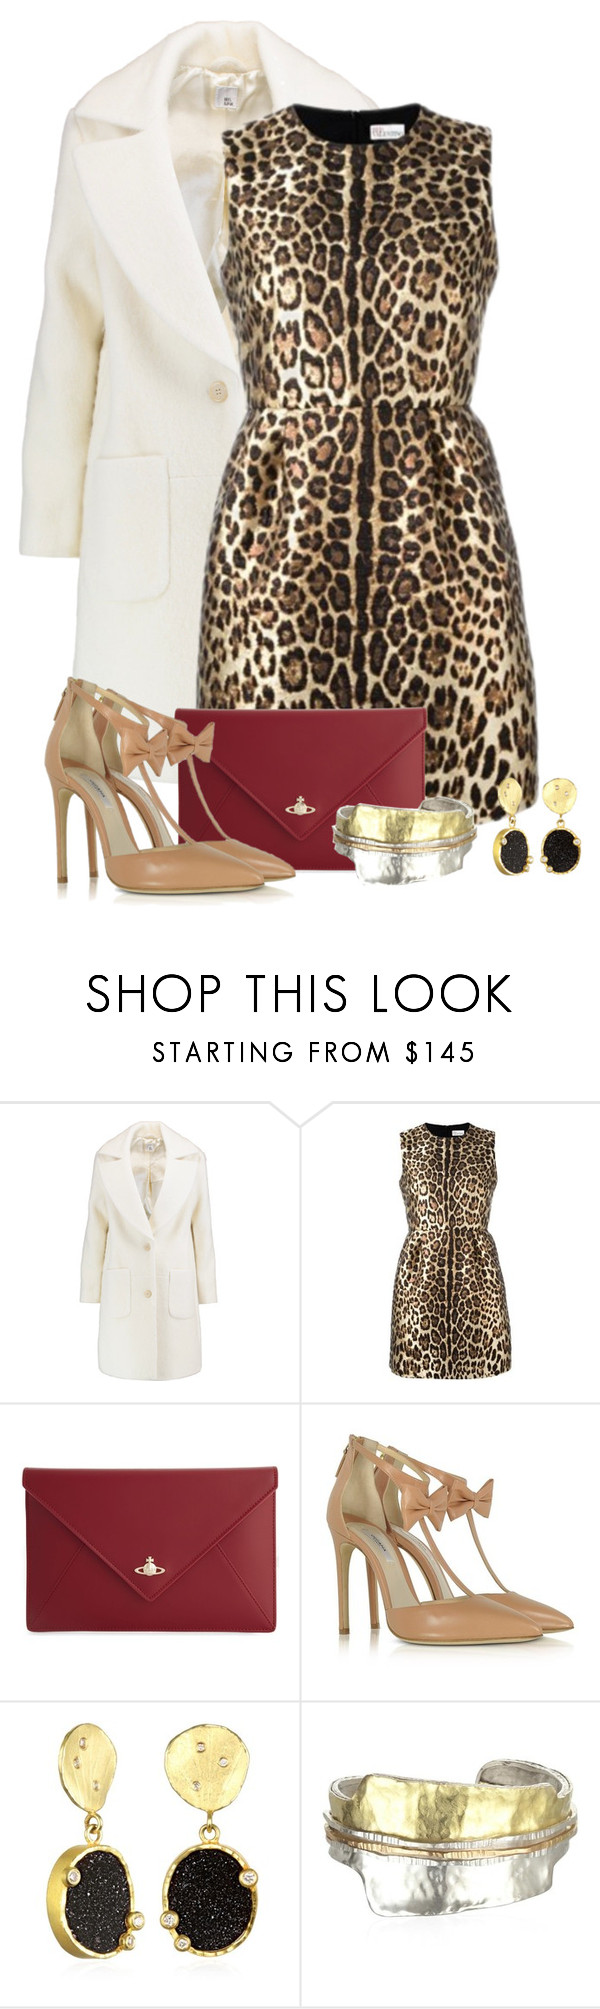 """""""Untitled #2375"""" by anfernee-131 ❤ liked on Polyvore featuring Iris & Ink, RED Valentino, Vivienne Westwood and Olgana"""